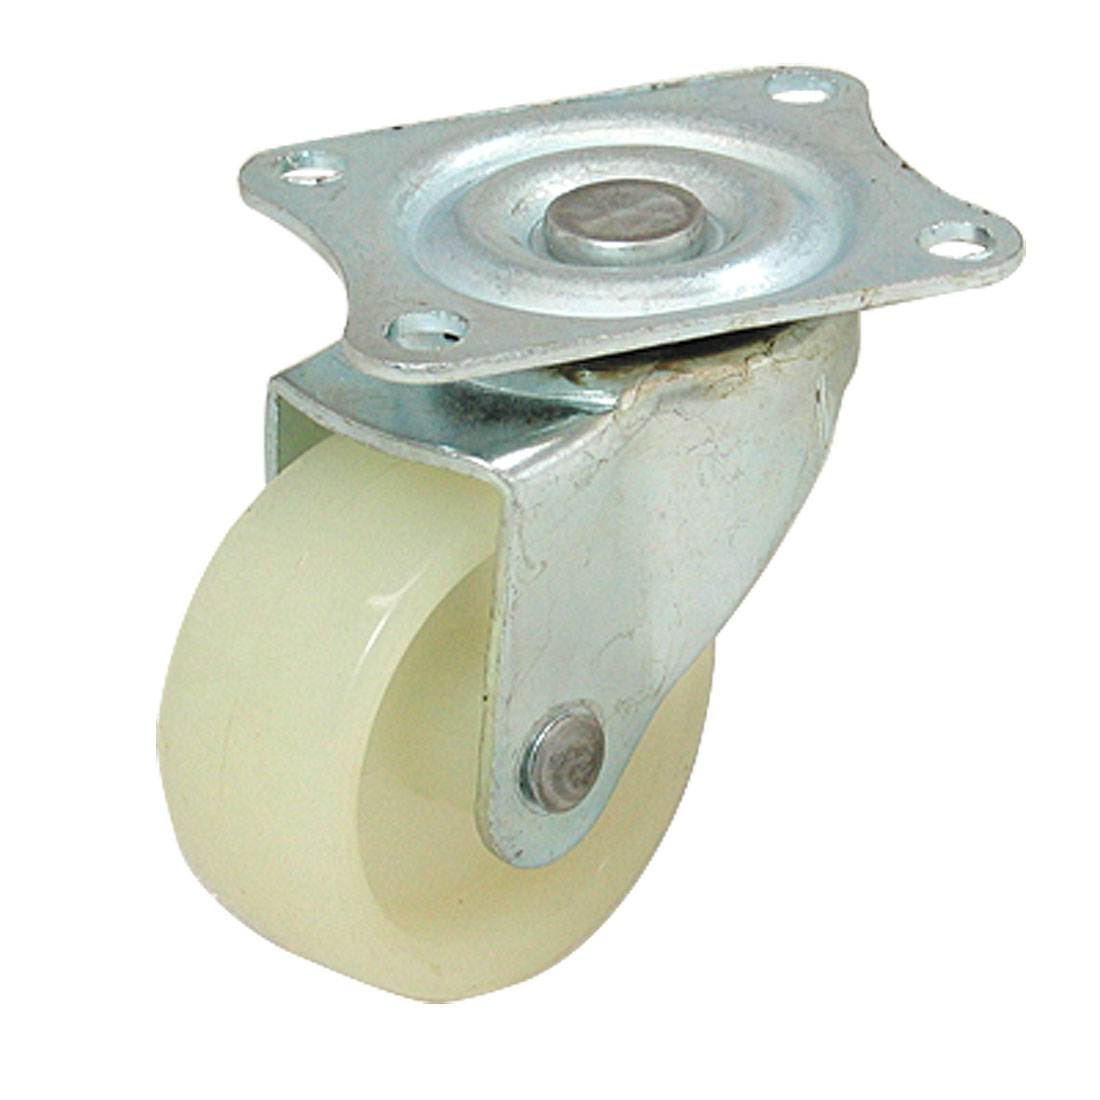 "2"" Flat Full Rotation Caster Replacement Wheel with Swivel Plate"